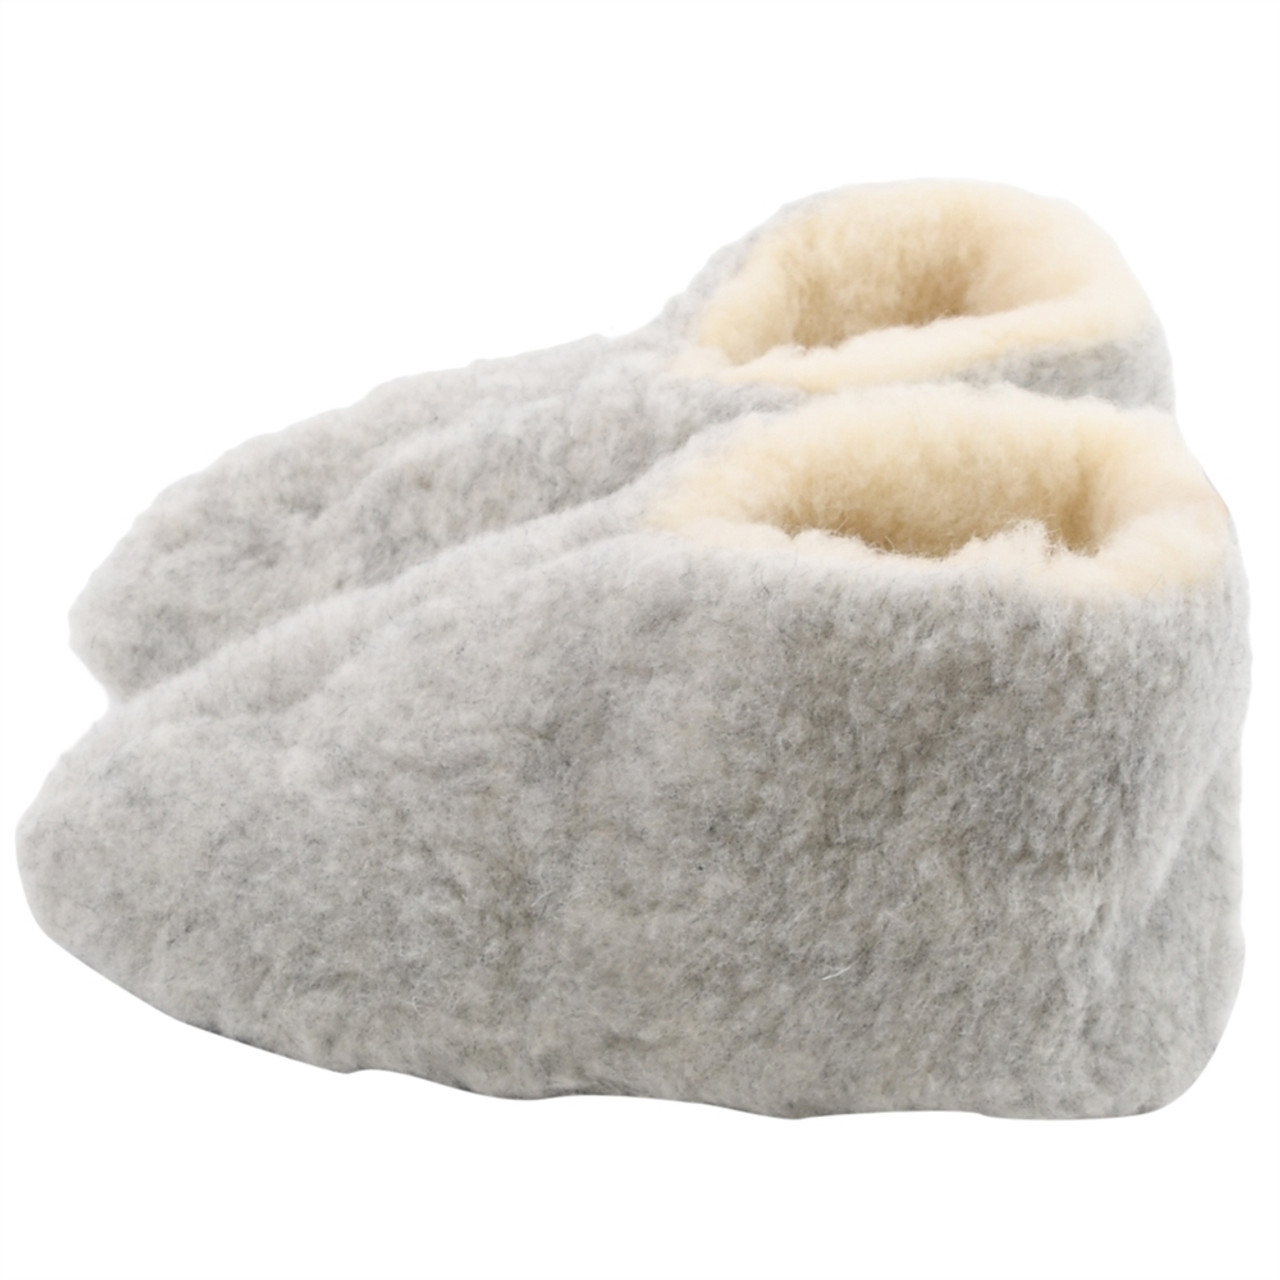 Sheep's Wool Slippers - Fits Sizes w11.5 - 12.5